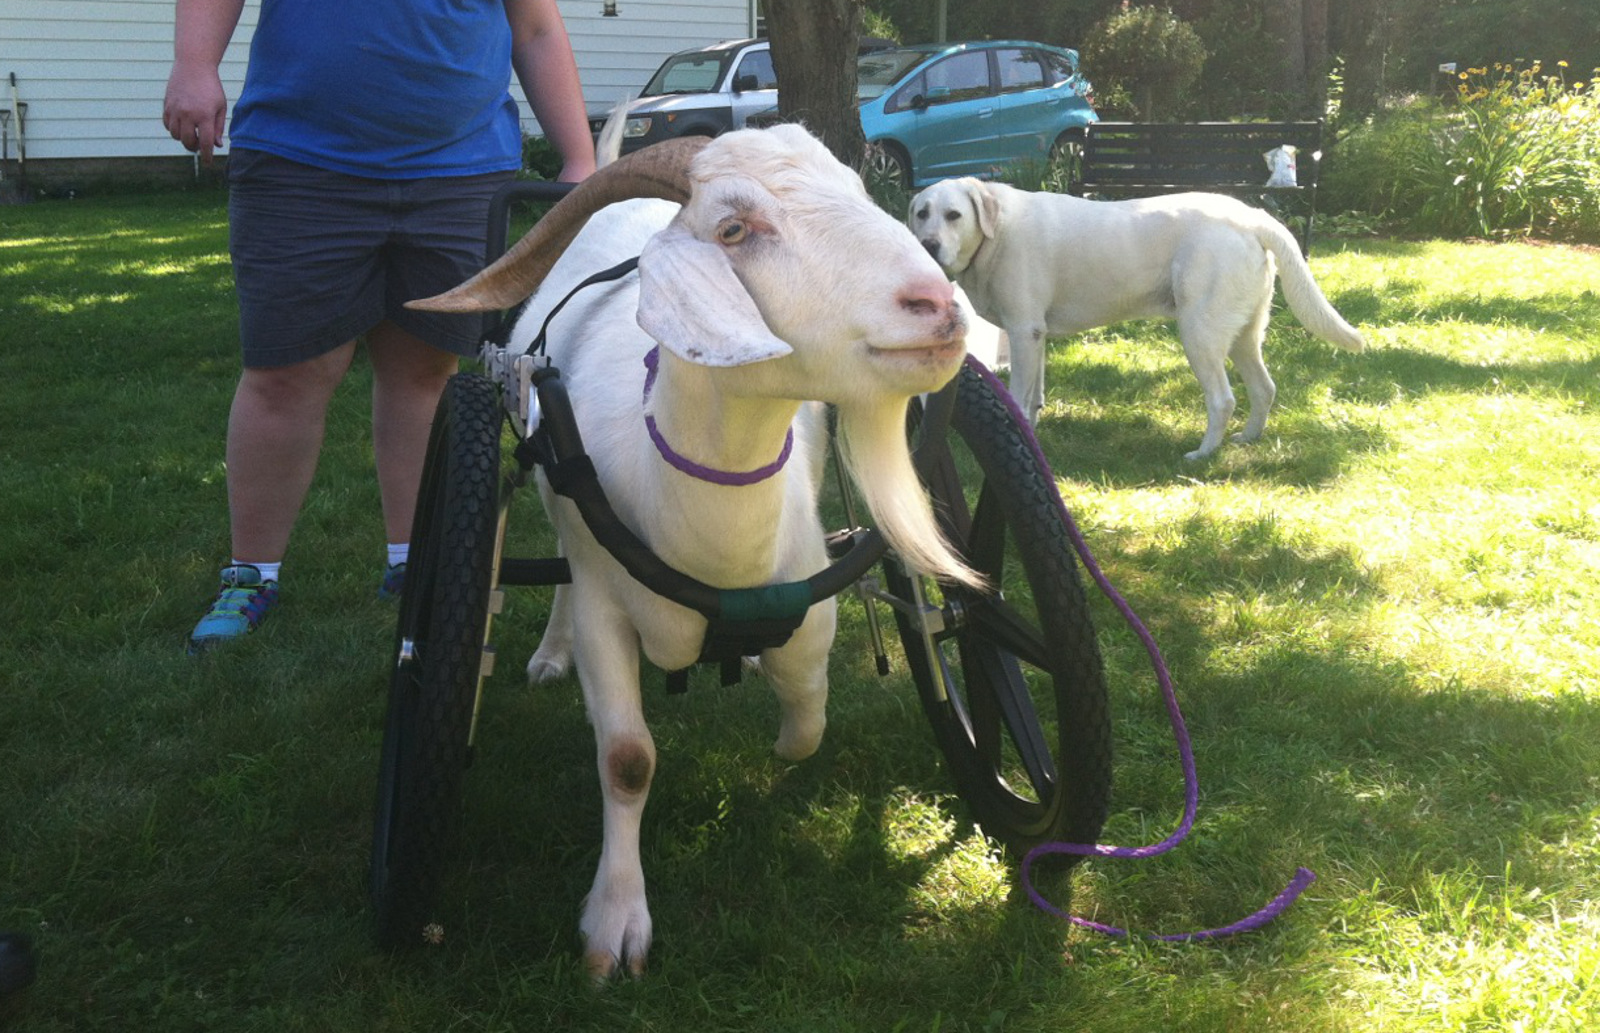 Rescued and Rehabilitated, Albie the Goat Gets a new set of Wheels! (Photos & Video)